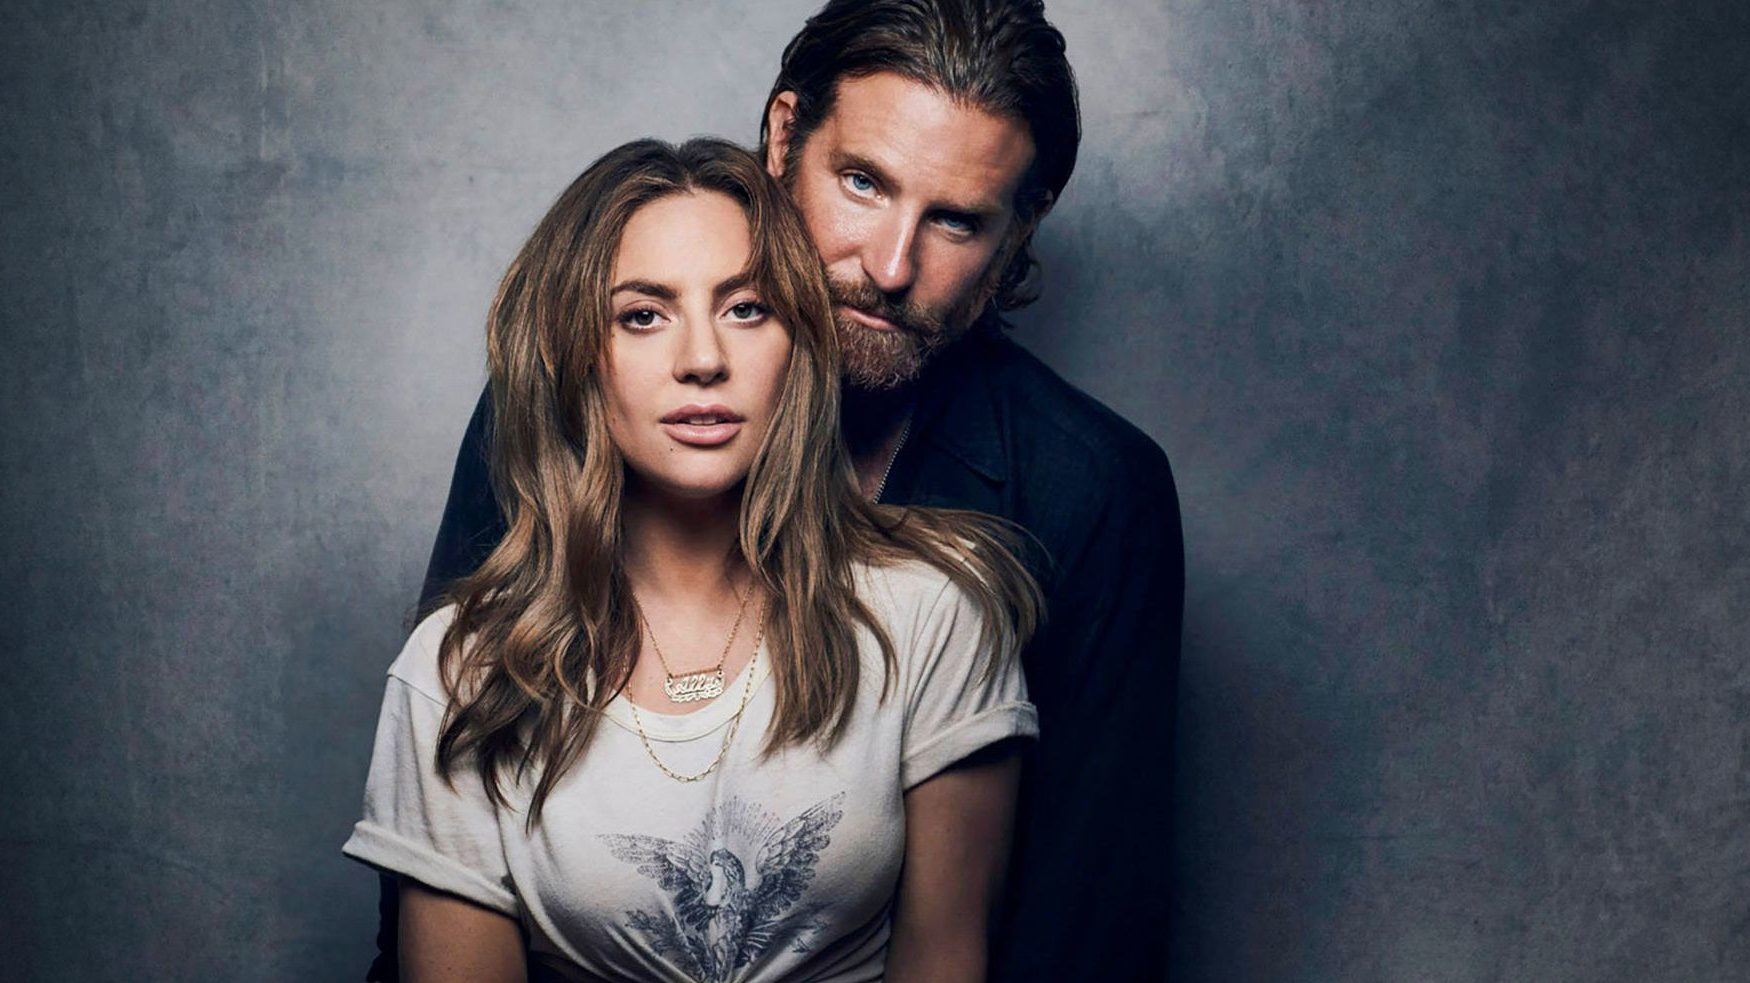 Lady Gaga, Bradley Cooper Dating Rumors Star is Born Couple to Reunite with Cleopatra Film